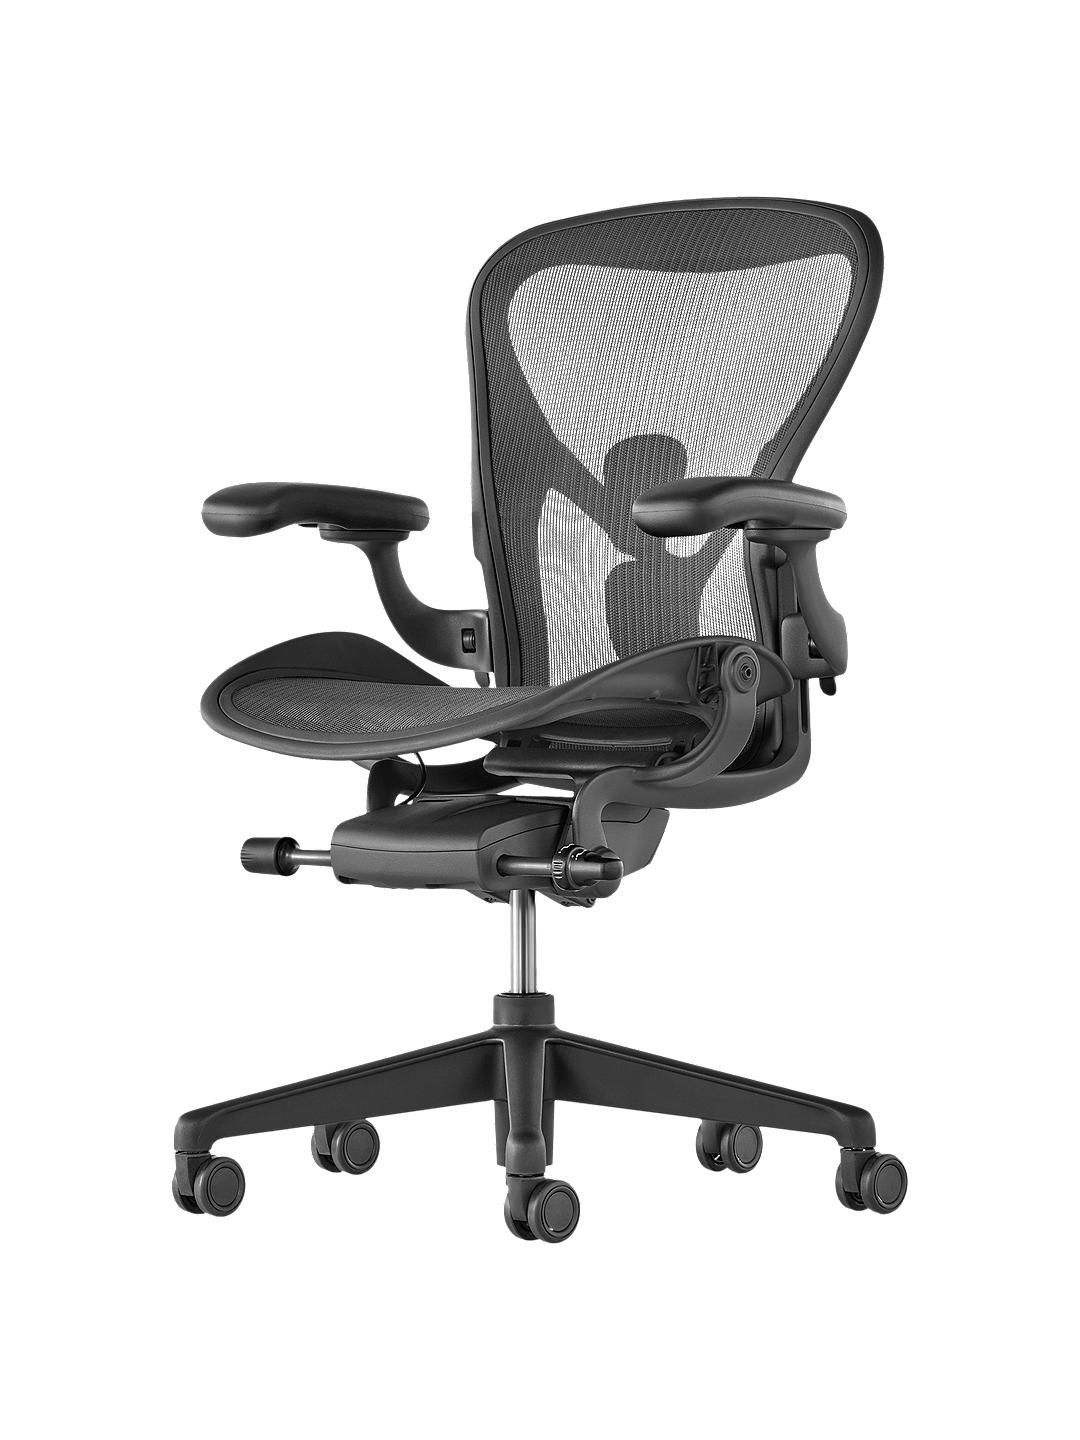 Pin on Office chairs for working from home